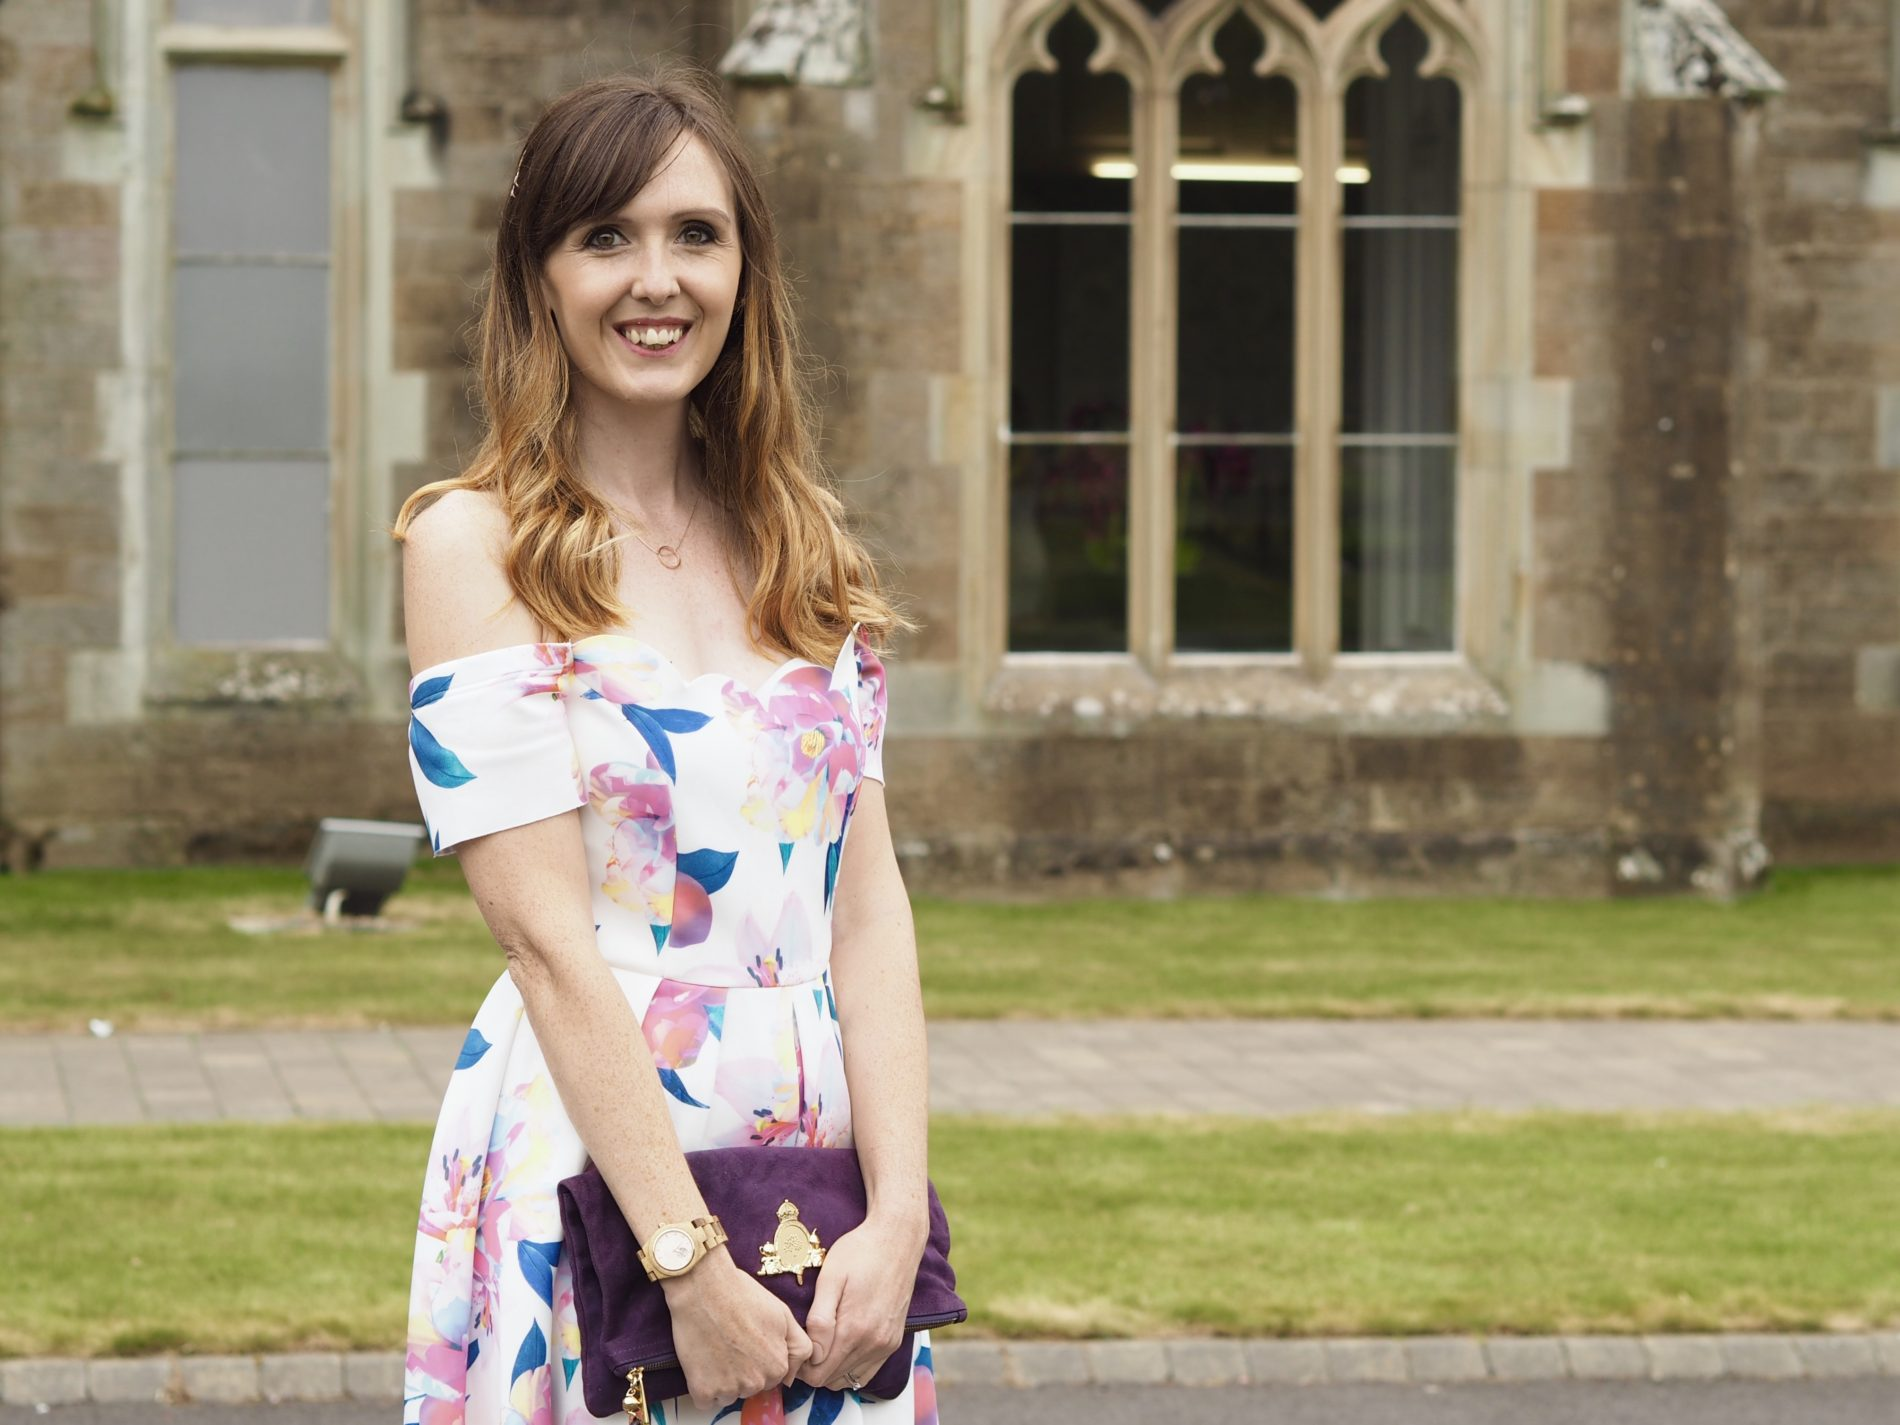 Wedding guest OOTD: Scallop floral prom dress from ASOS